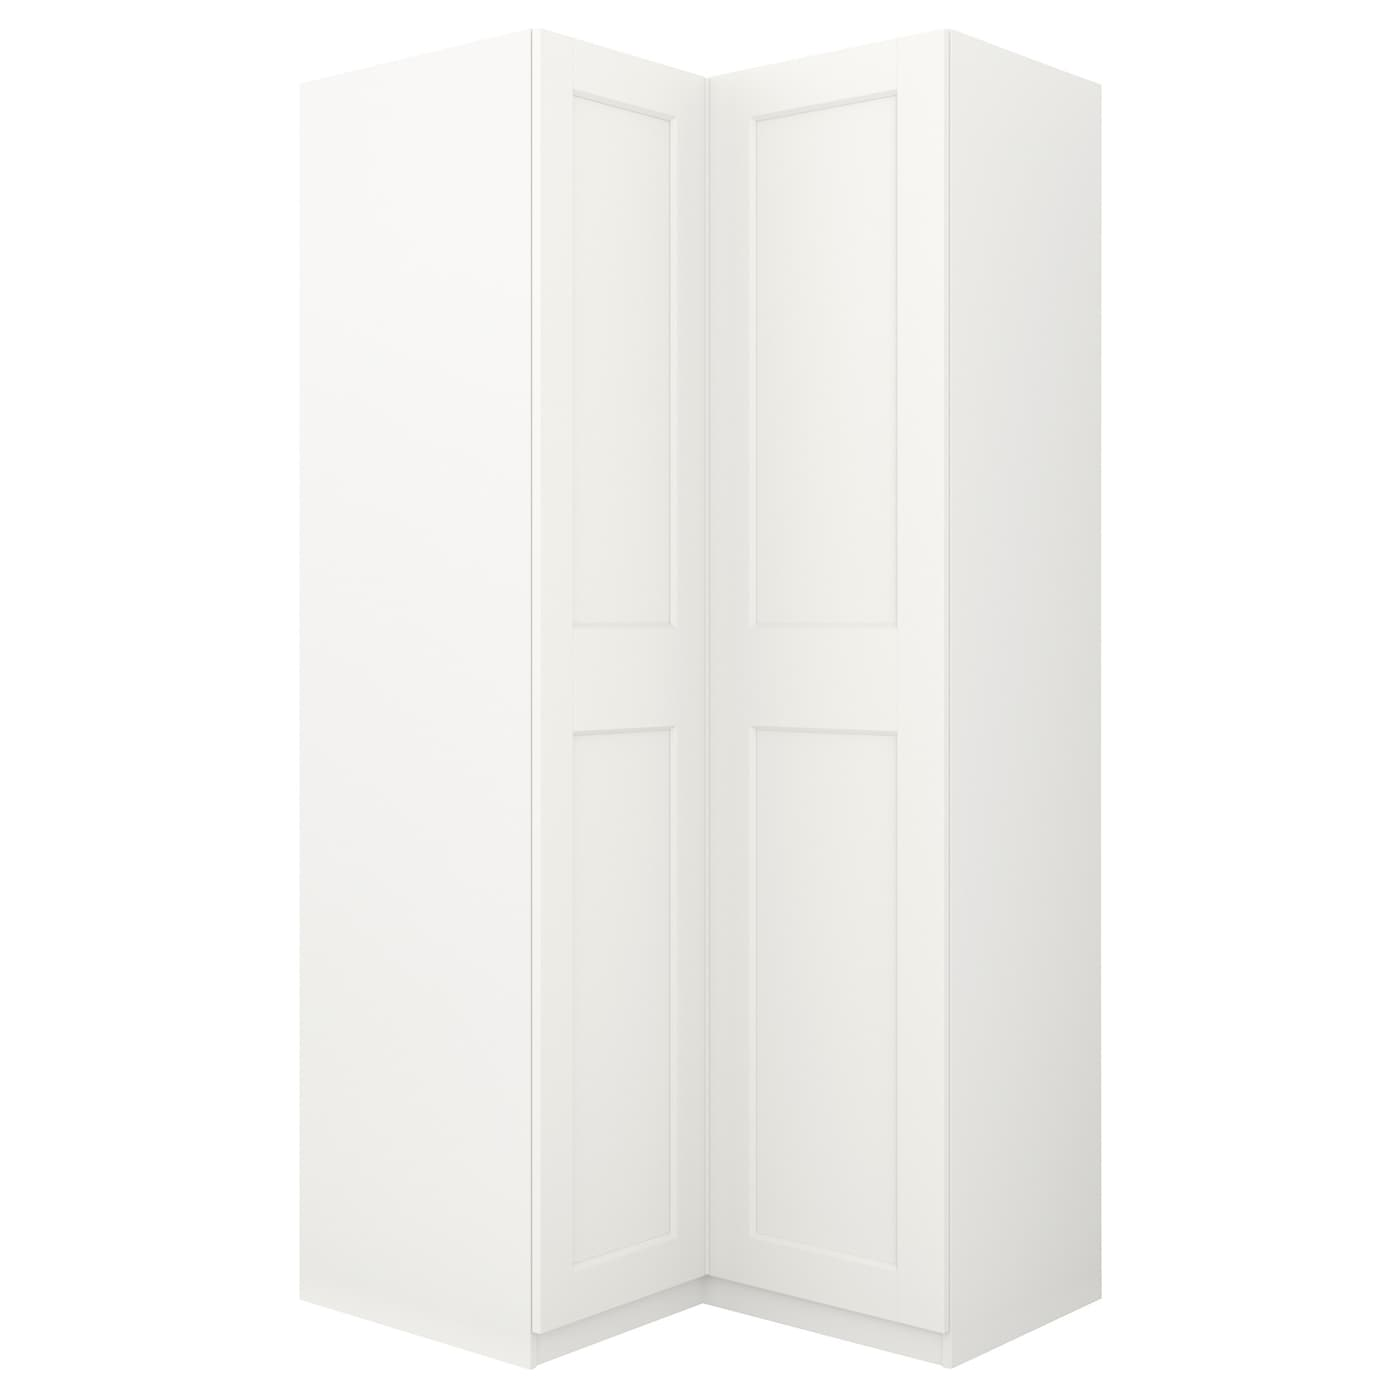 pax penderie d 39 angle blanc grimo blanc 111 111 x 236 cm ikea. Black Bedroom Furniture Sets. Home Design Ideas